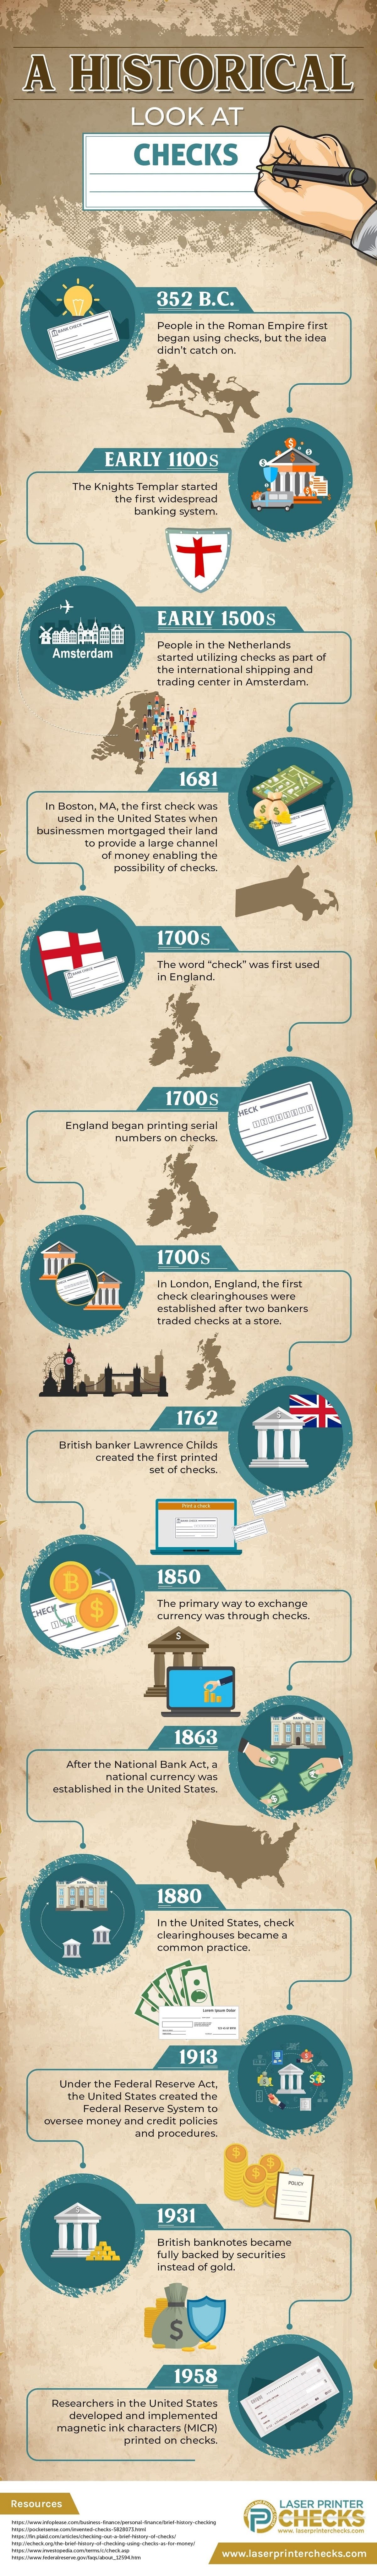 A Historical Look at Checks #infographic